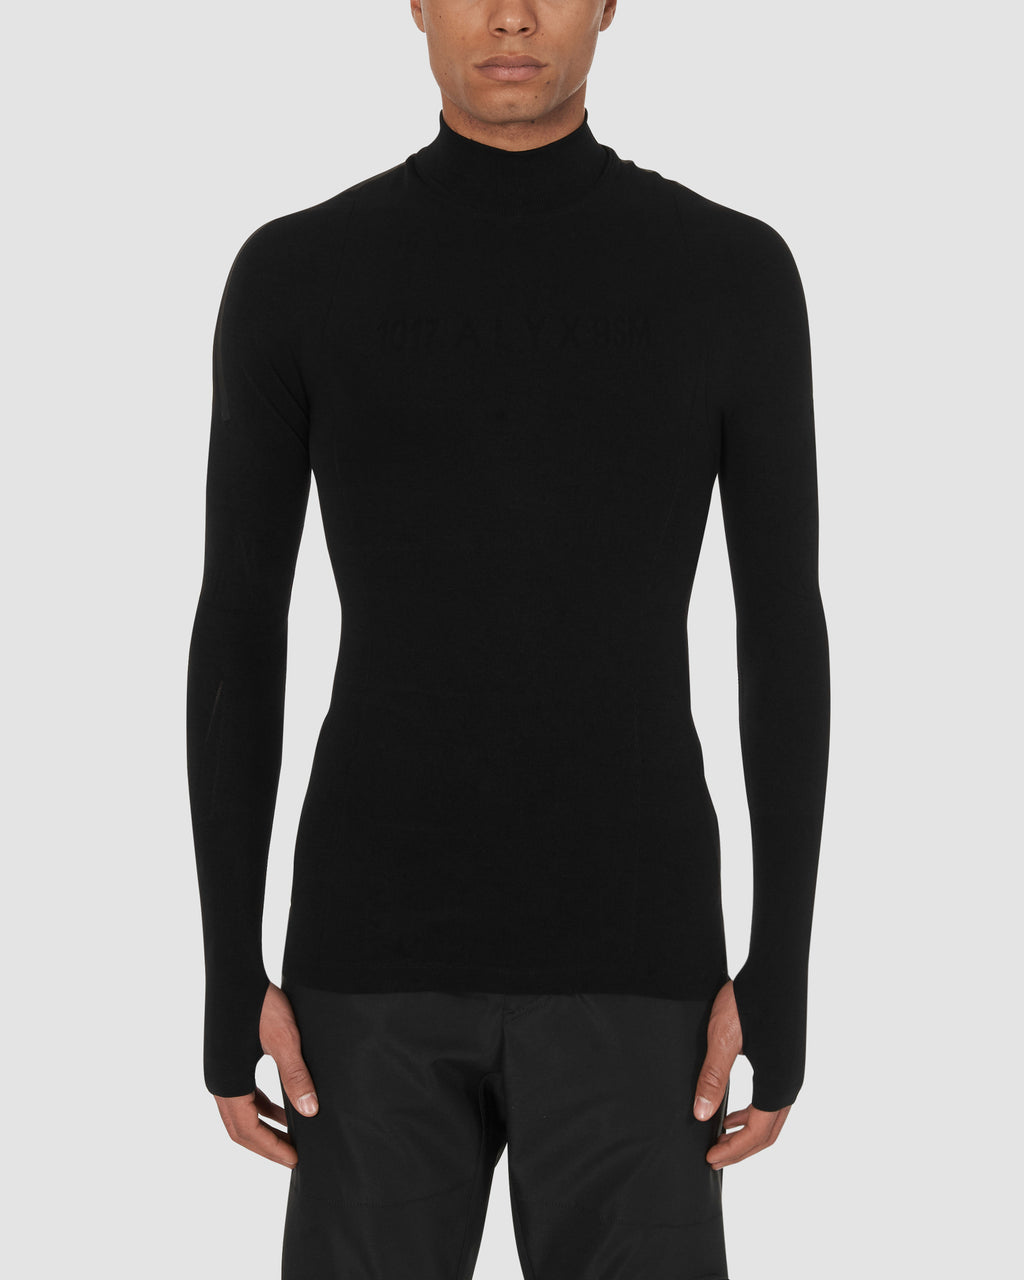 1017 ALYX 9SM | MONCLER JUMPER | Sweatshirt | BLACK, Google Shopping, MEN, Moncler, S20, T-SHIRTS